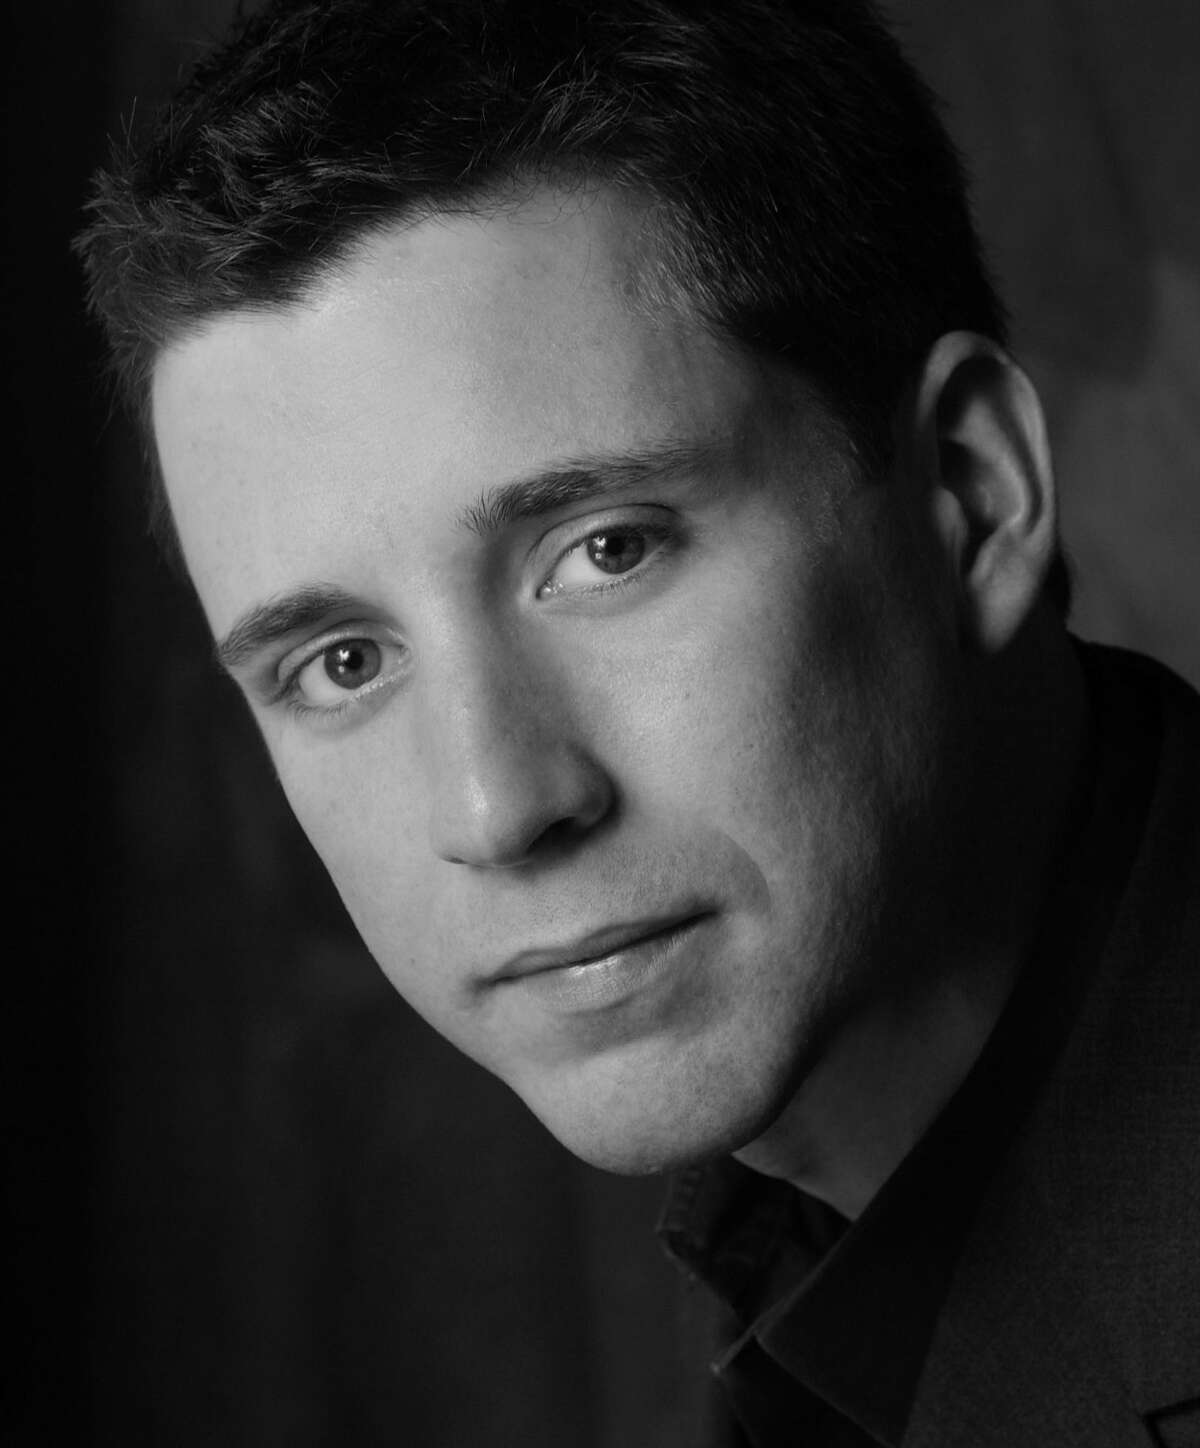 The Norwalk Symphony Orchestra's family holiday concert takes place at the Norwalk Concert Hall on Dec. 14. Featured soloists are William Ferguson, pictured, tenor; Amelia Watkins, soprano; Sarah Heltzel, mezzo-soprano, and Blake Burroughs, bass.